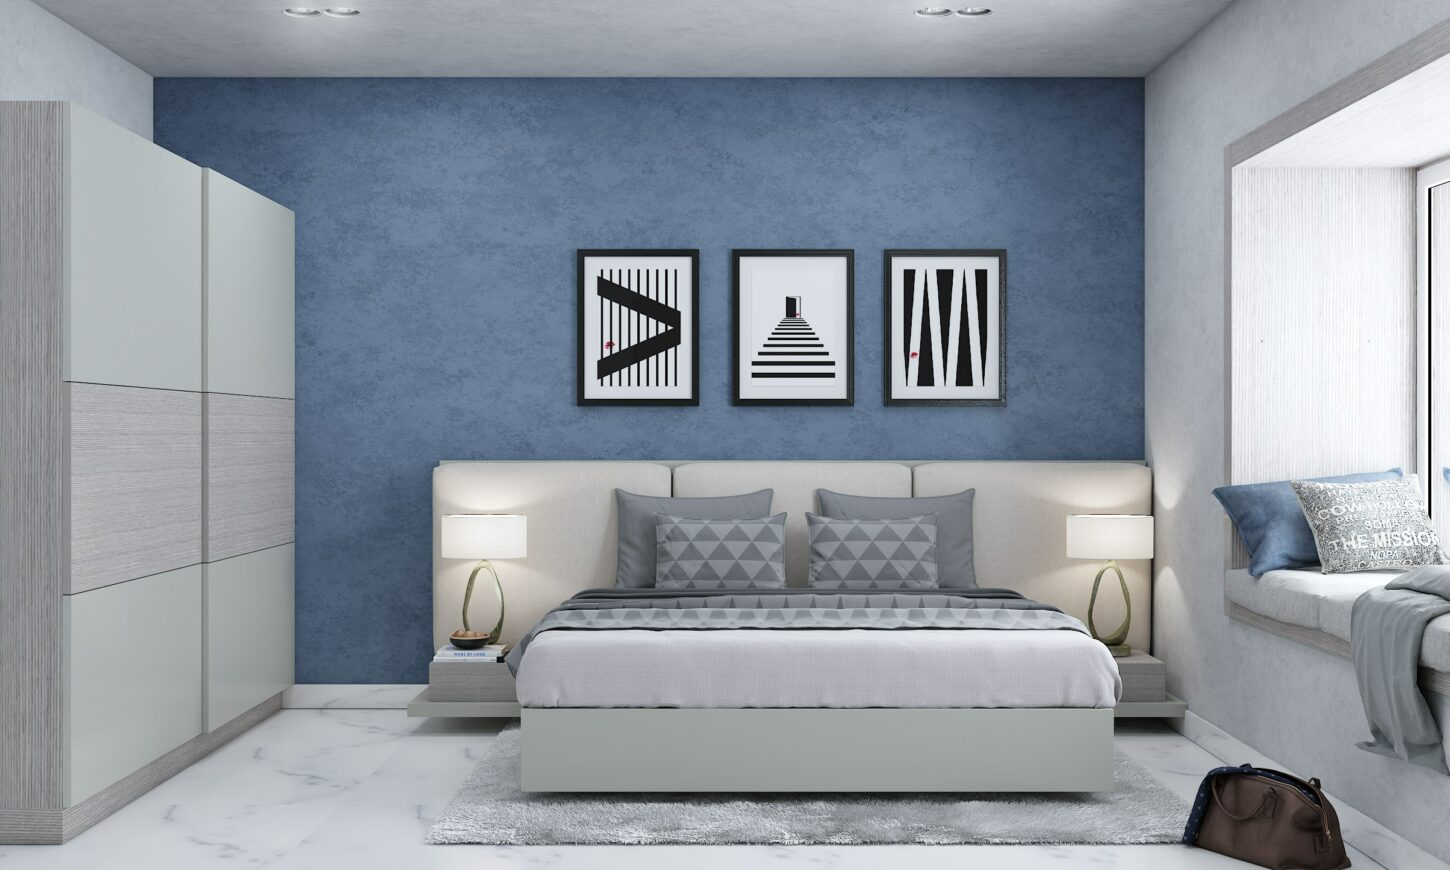 3 bhk home of chaitra guest bedroom interior design in nelamangala bengaluru designed by design cafe